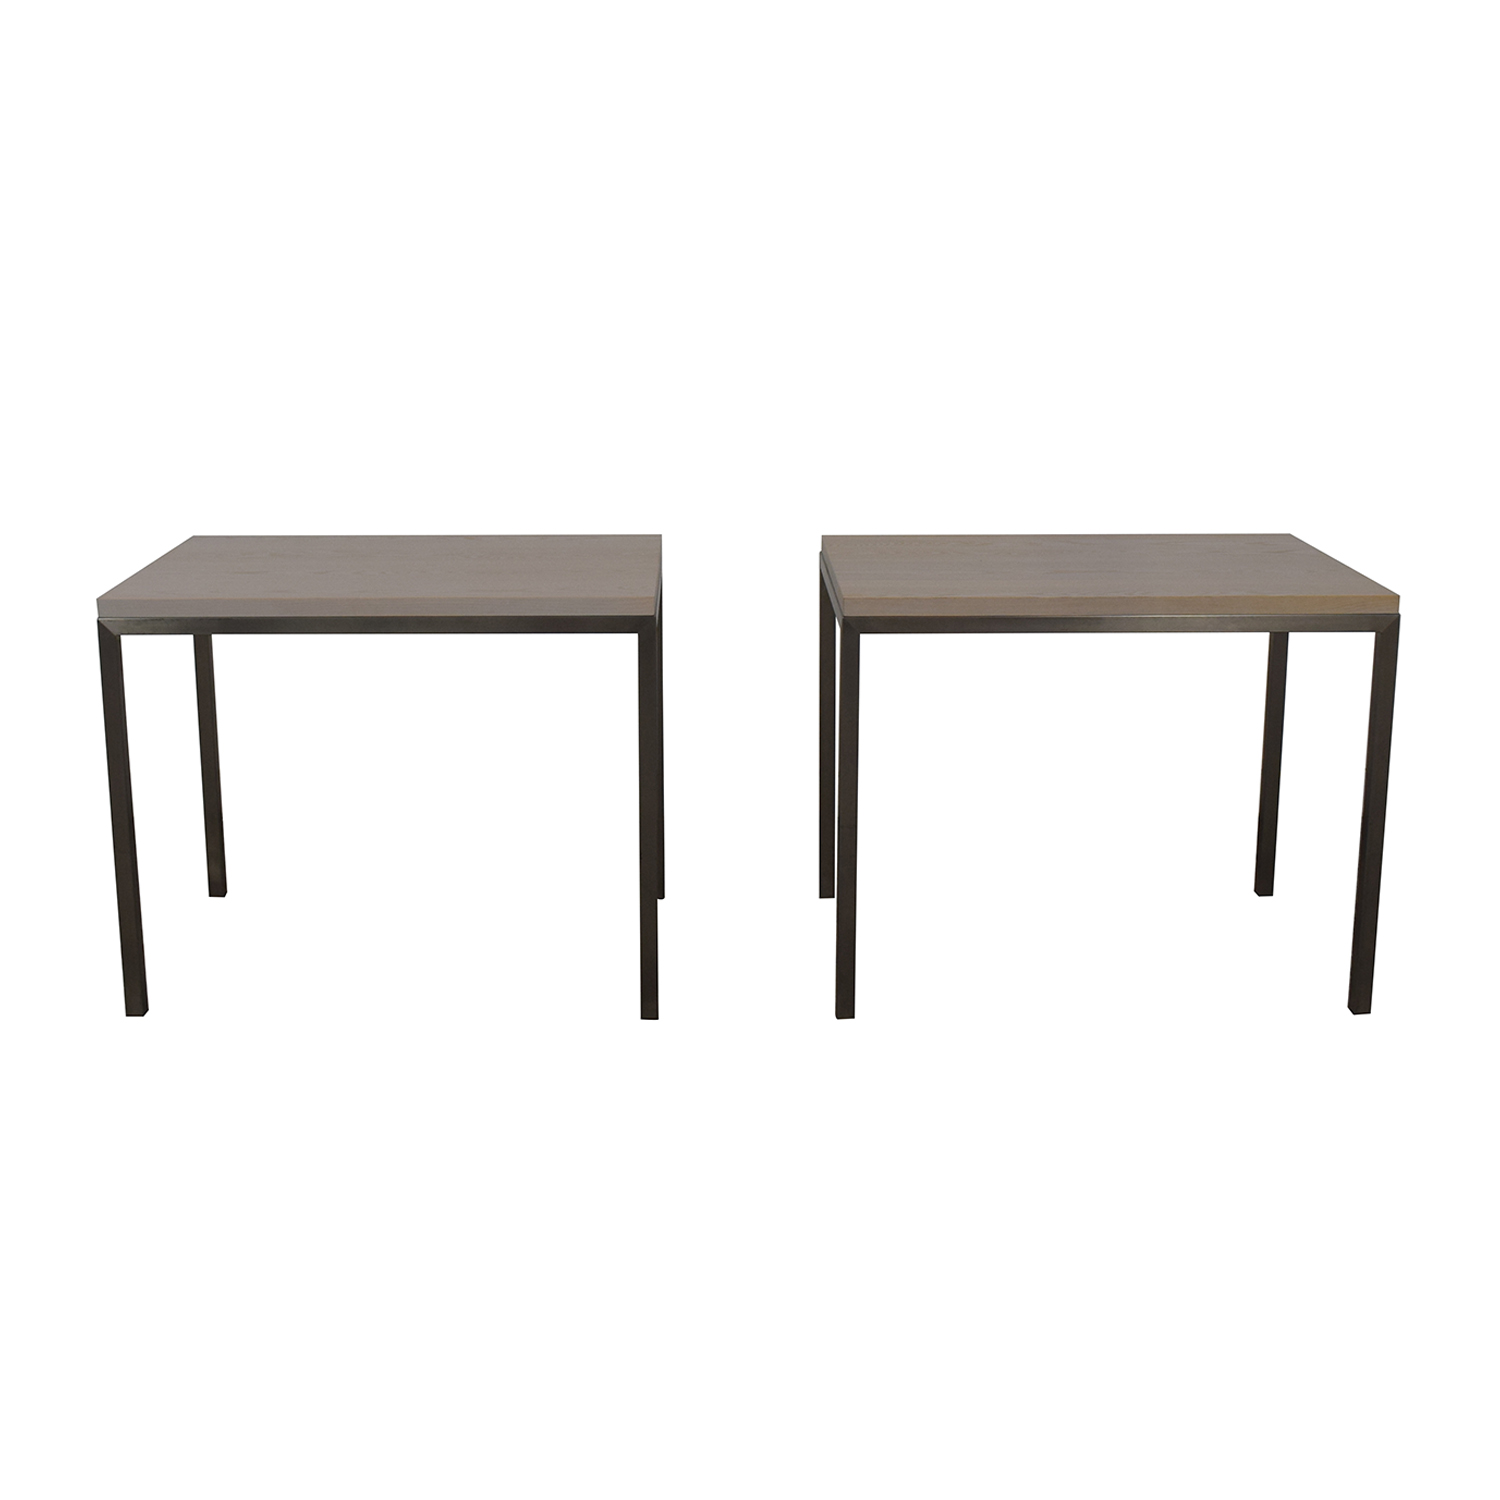 Room & Board Portica End Tables / Tables